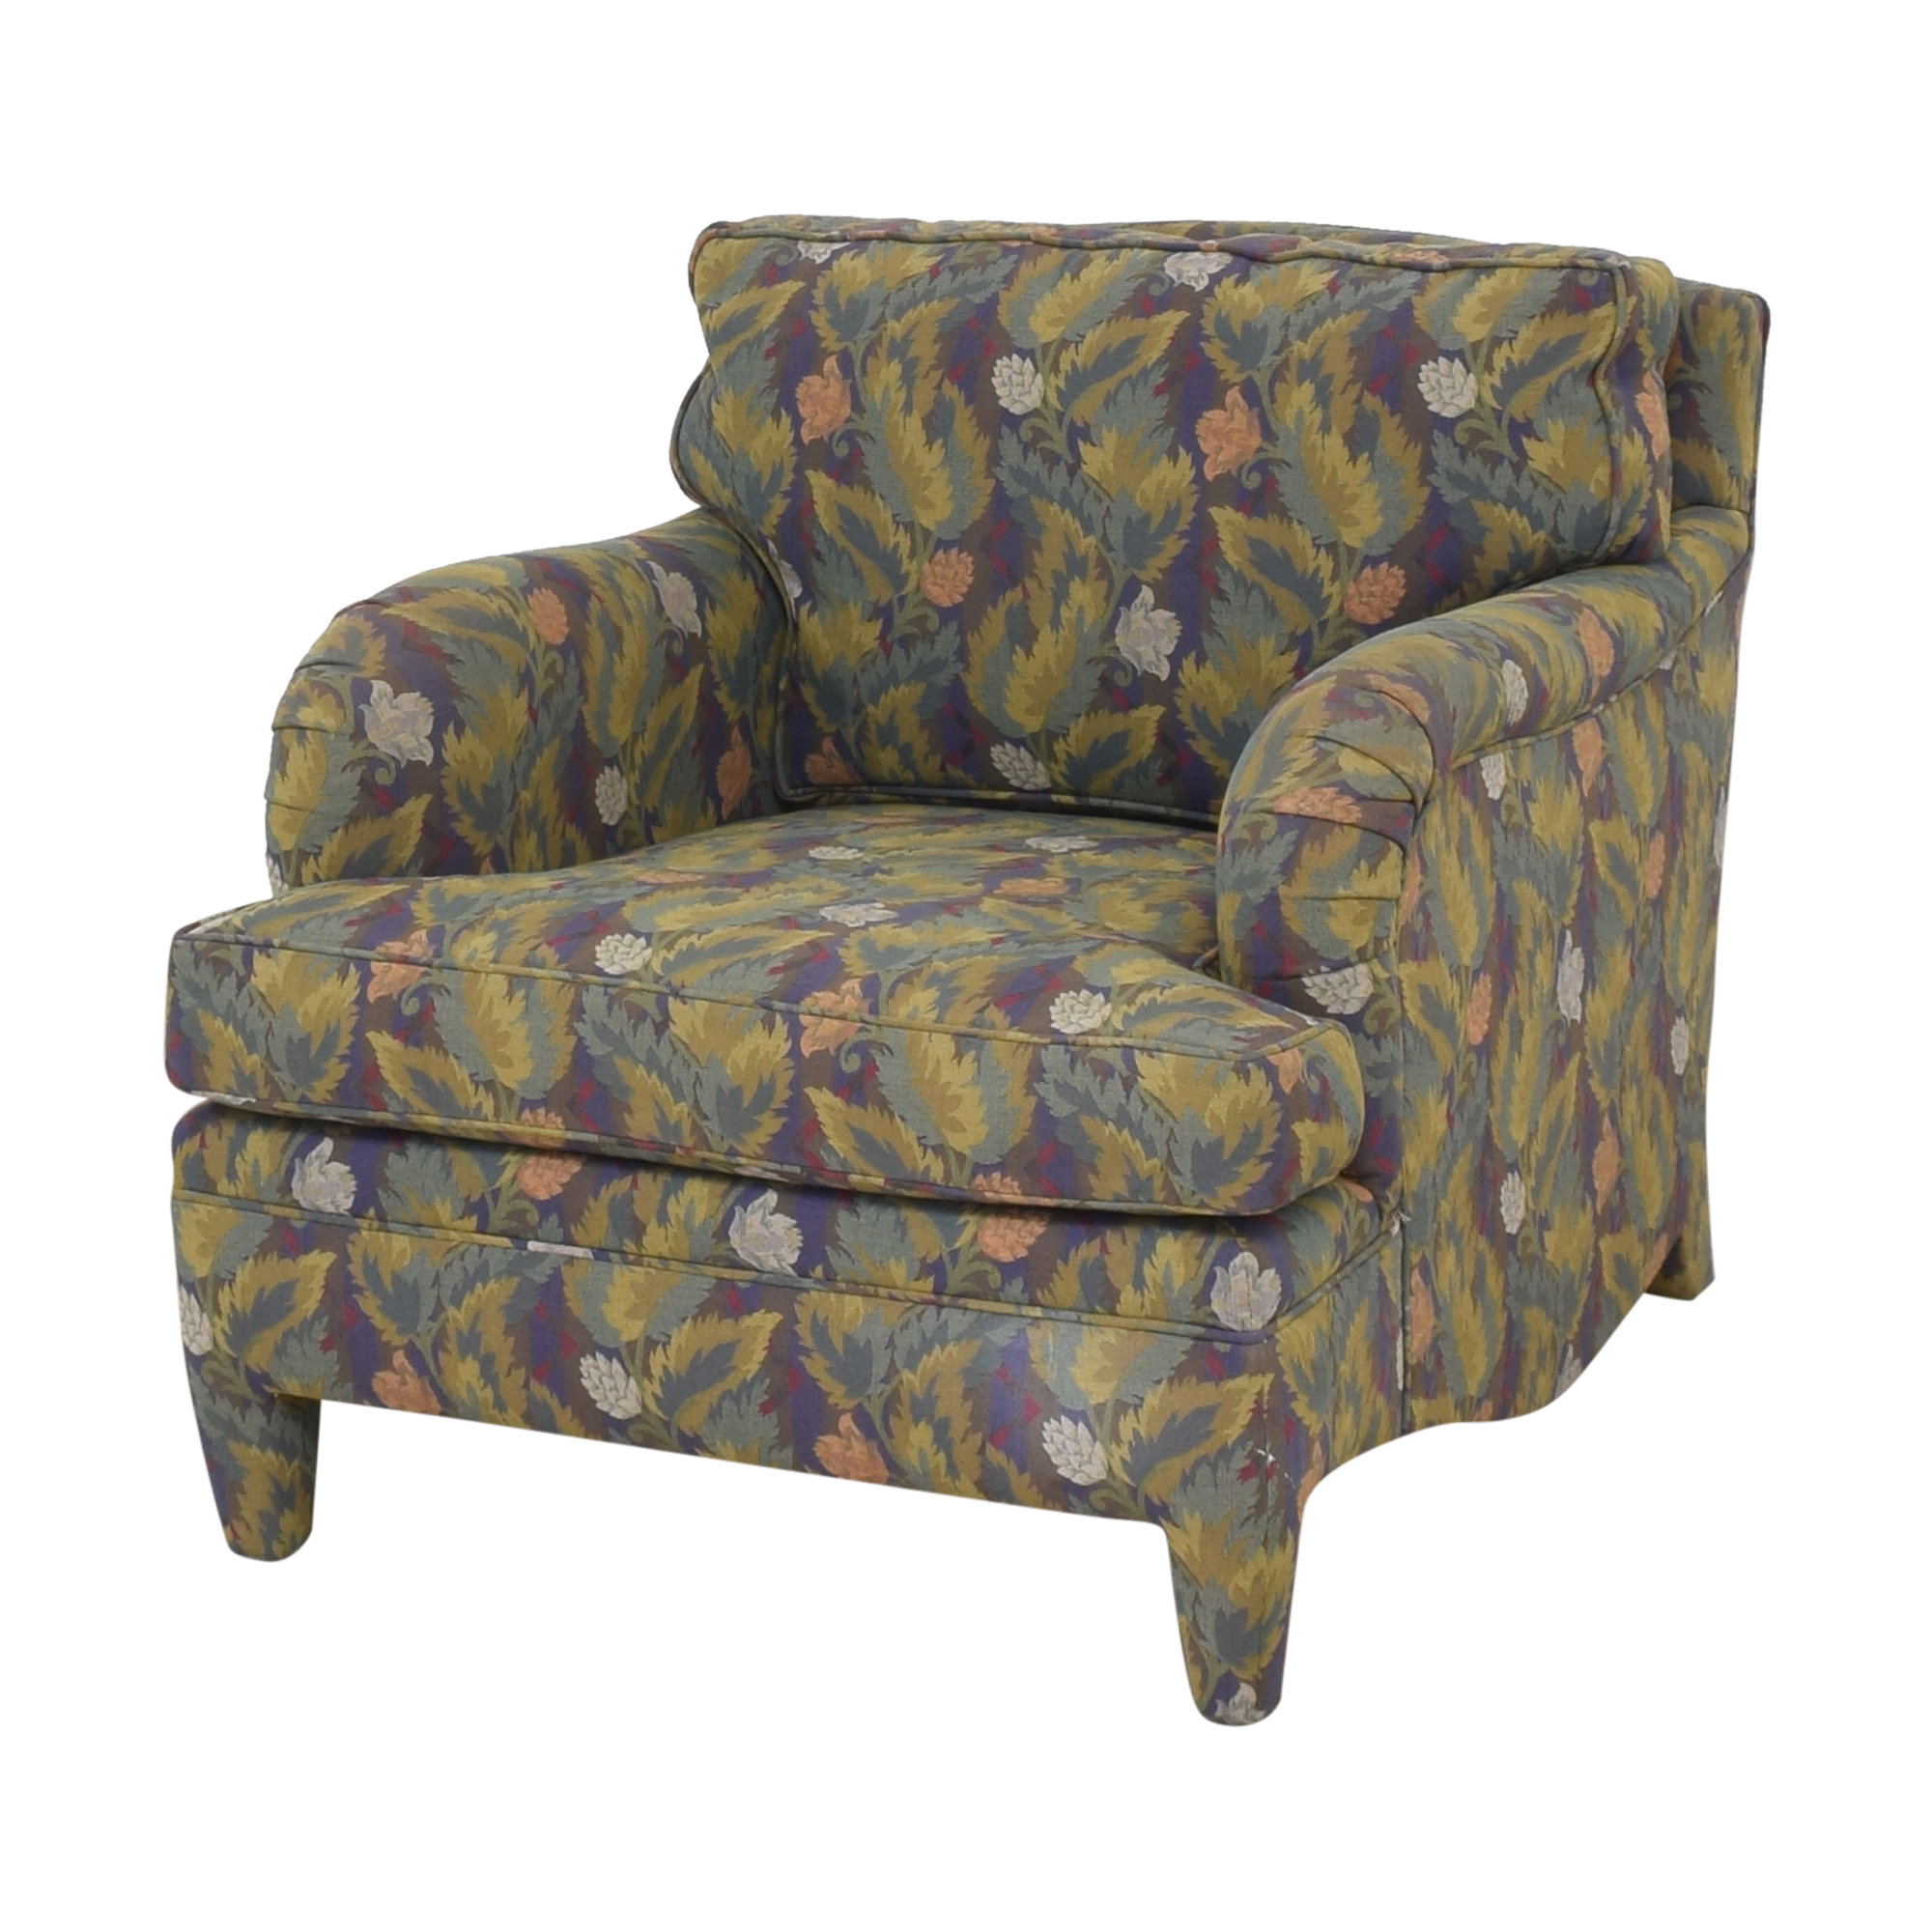 Donghia Donghia Upholstered Club Chair for sale